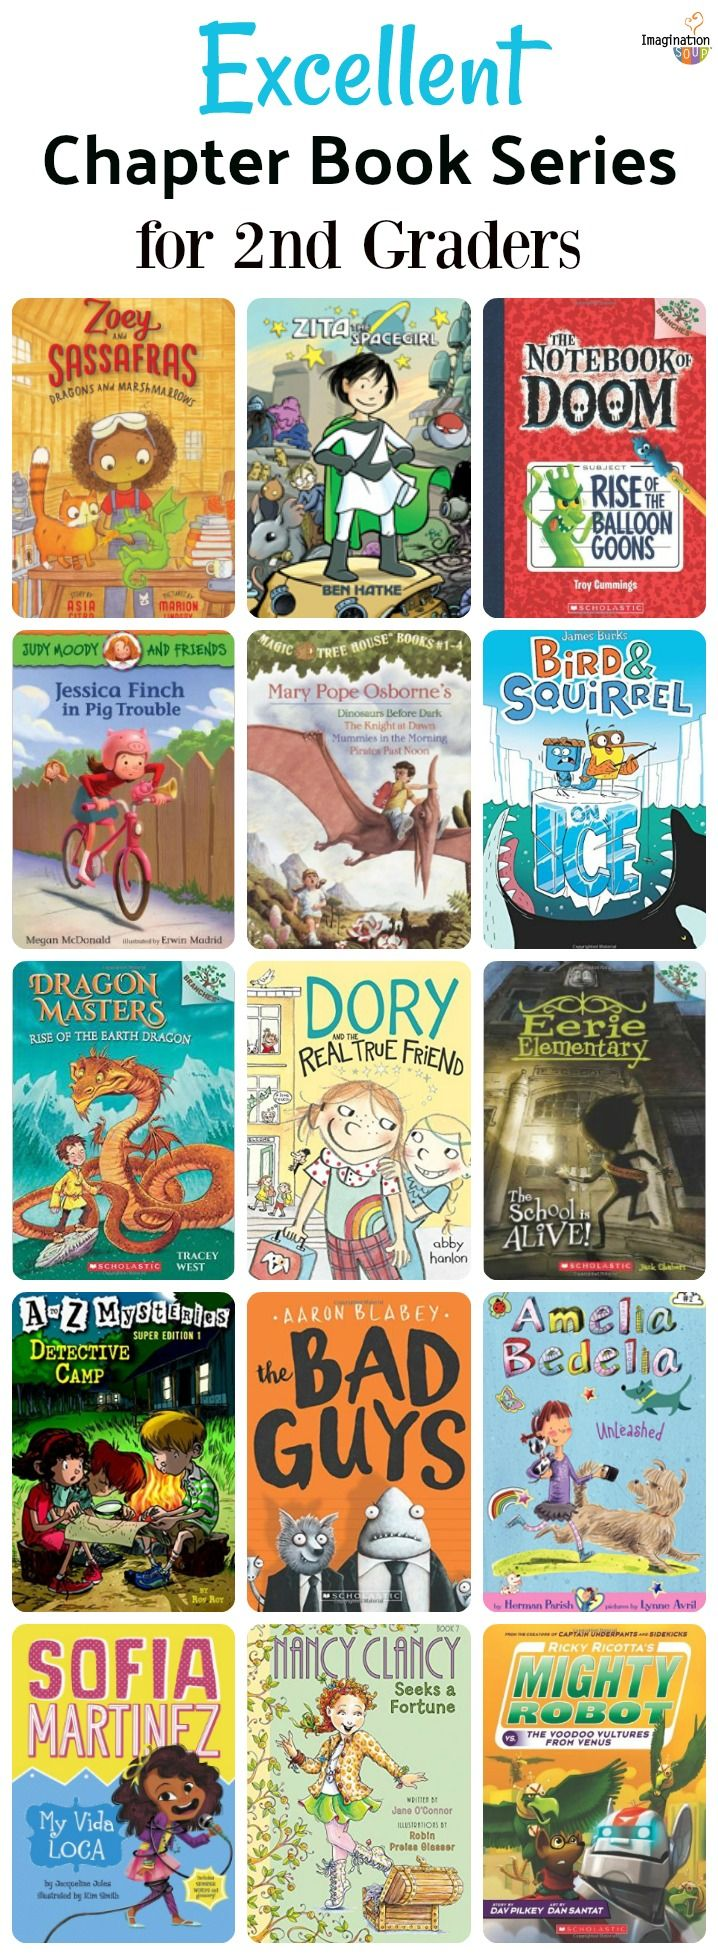 18 Fantastic Chapter Book Series for 2nd Graders | Pinterest | Book ...